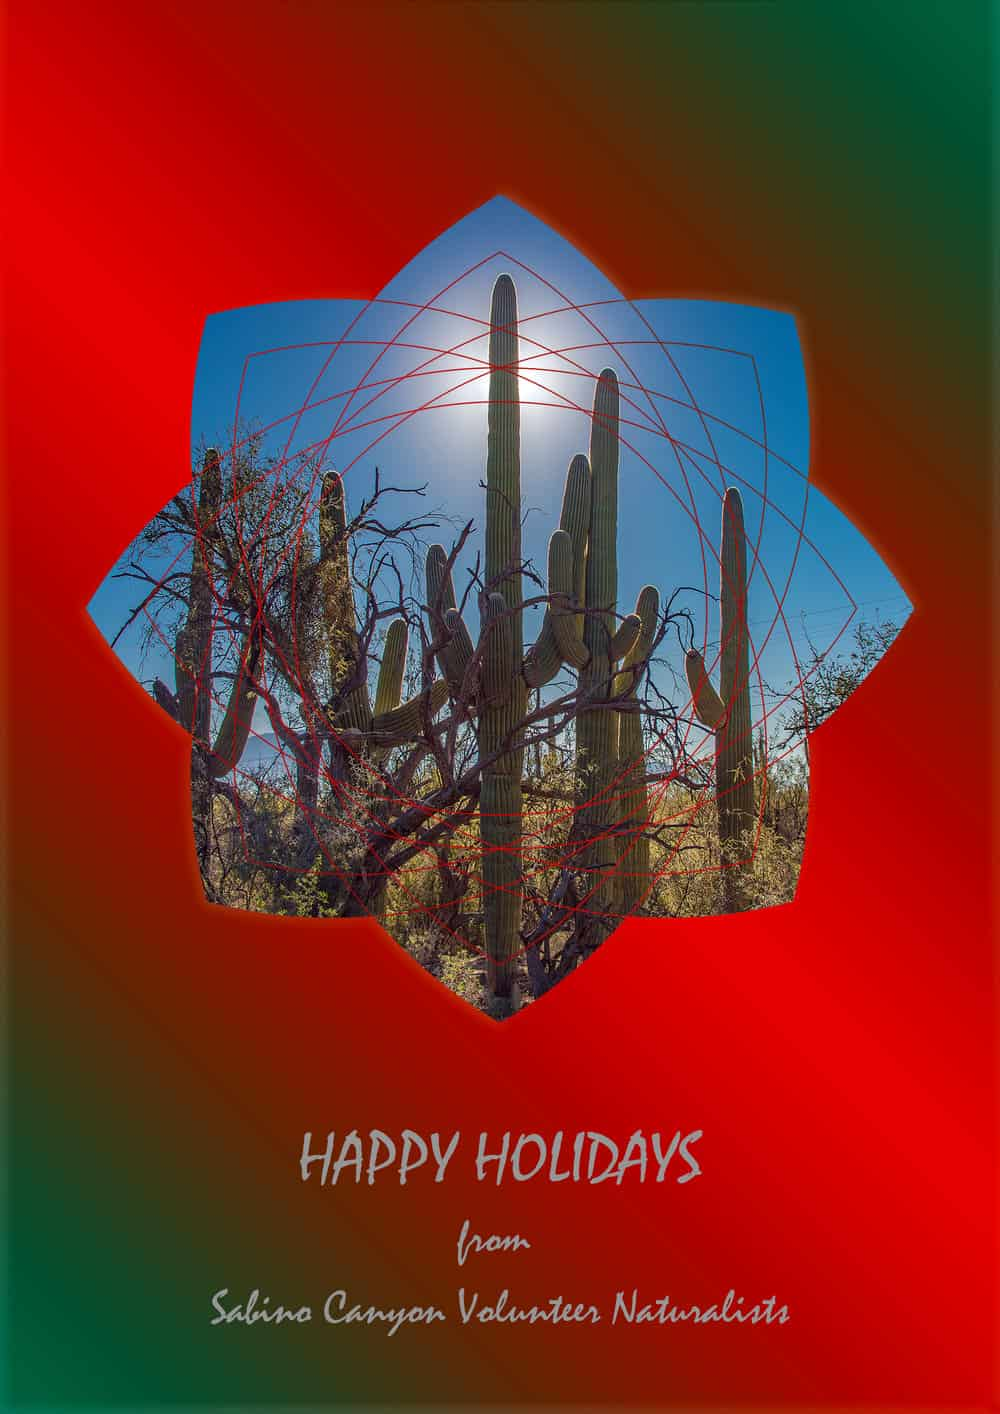 HAPPY HOLIDAYS FROM THE SCVN BOARD & TEAM COORDINATORS